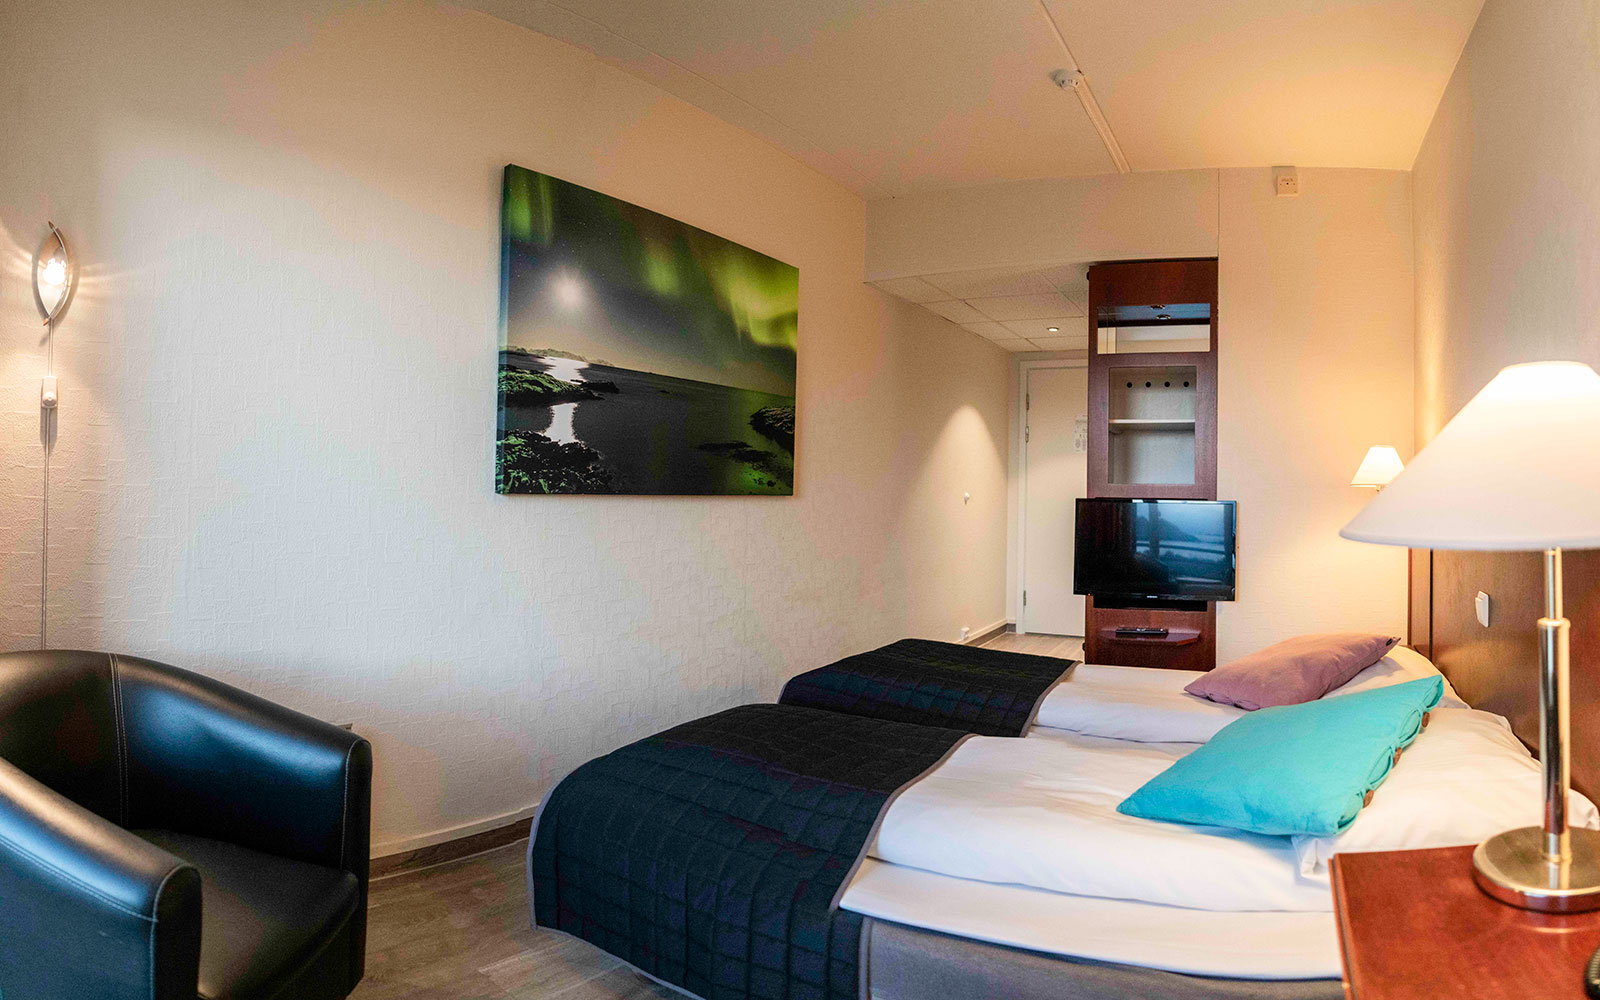 Double room with balcony and sea view - beds